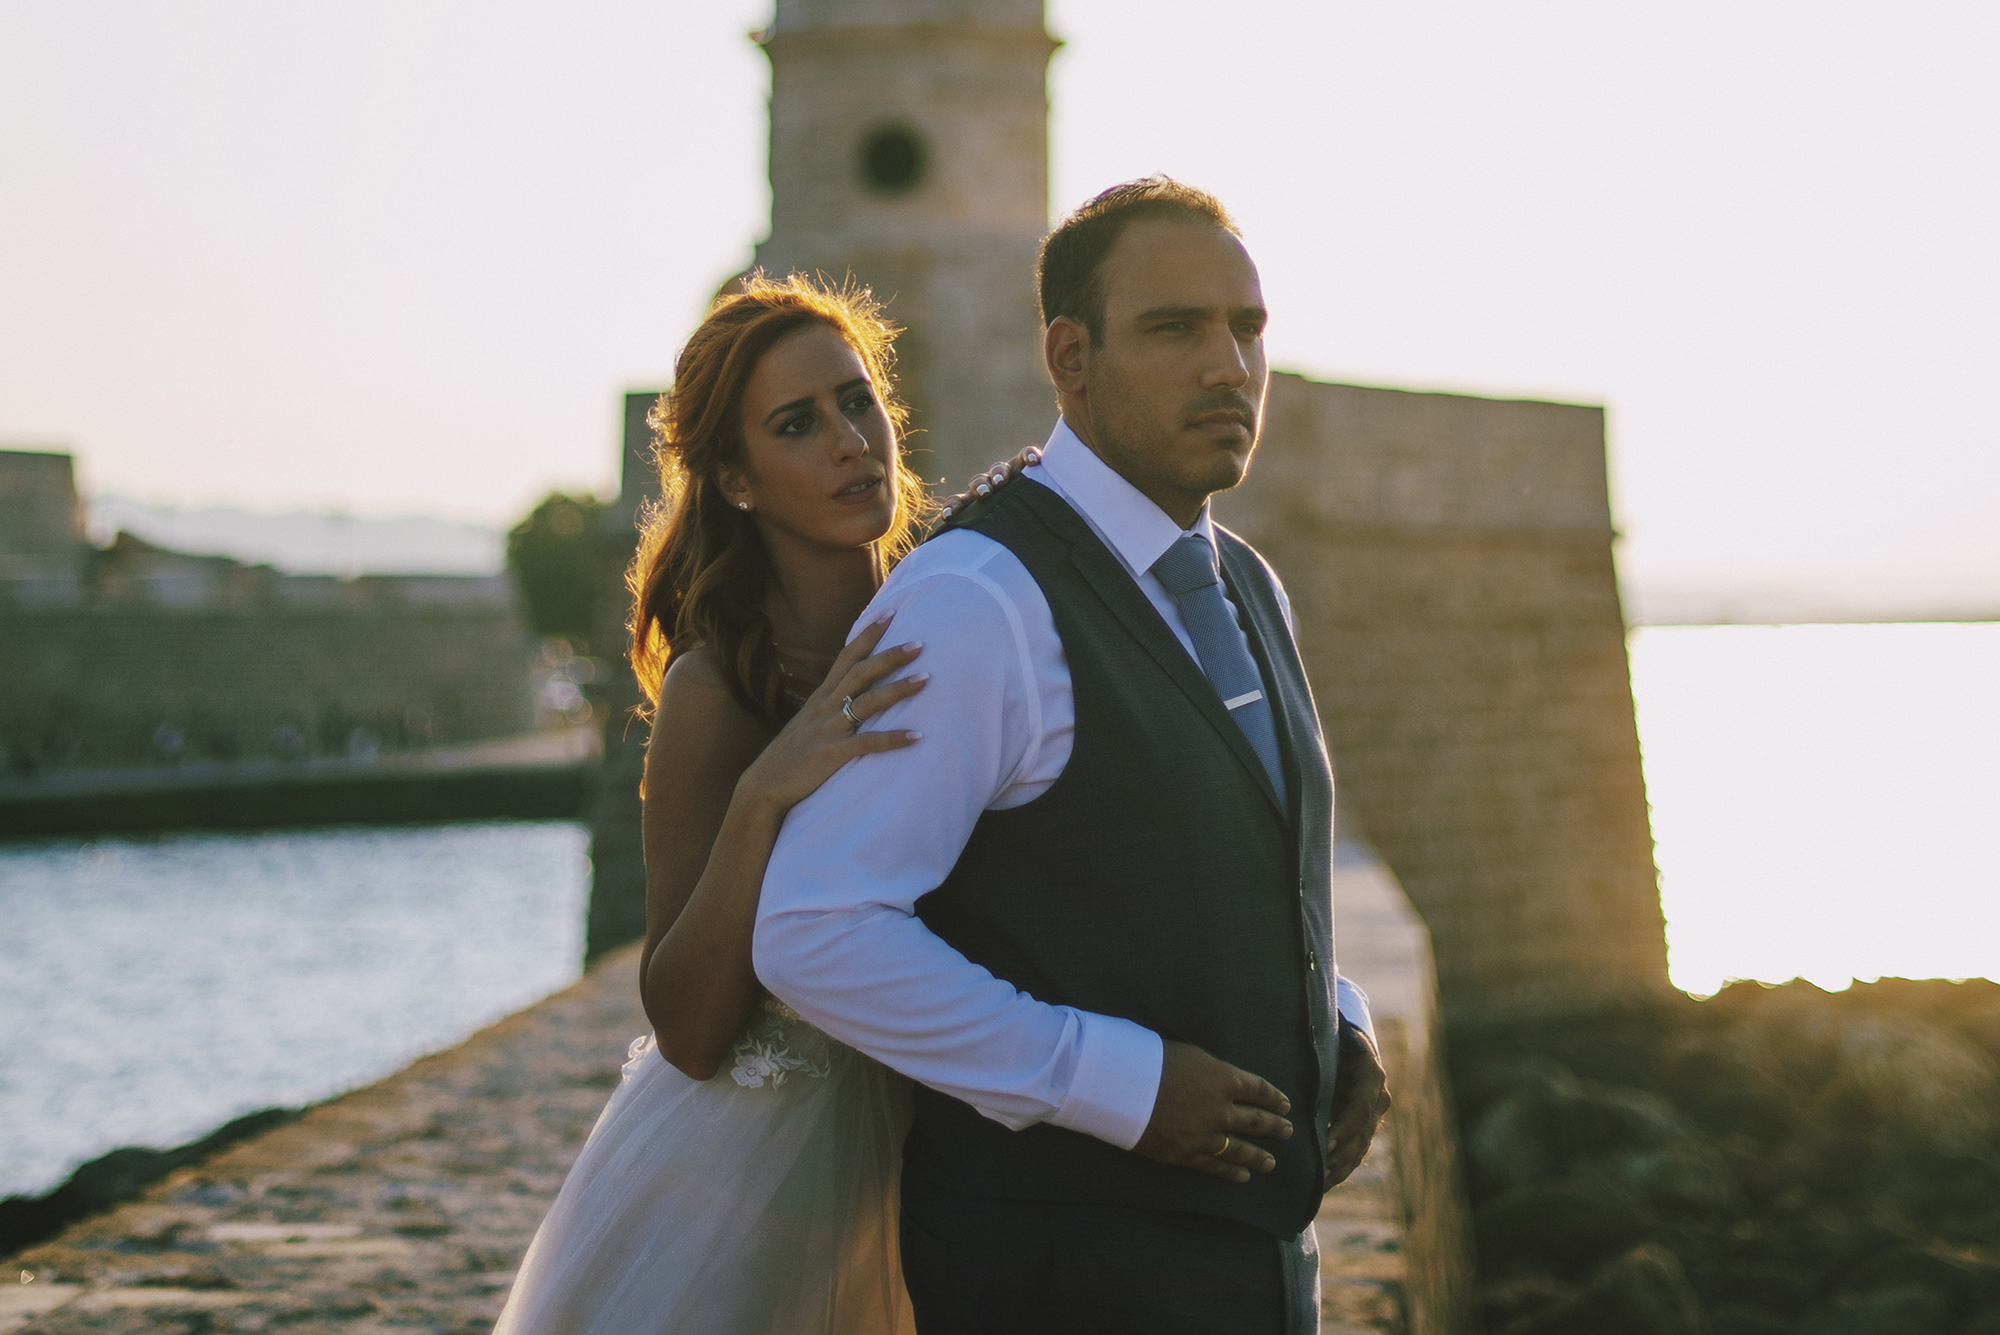 DIMITRA & GIORGOS, WEDDING IN PELOPONNESE AND CRETE  When this wonderful couple contacted me to be their wedding photographer, I was touched by their move and I was extremely happy! Giorgos is a good friend of mine and Dimitra is a big fan of my work and she is very interested in the Art of Photography as a whole. Wasting no time, we planned an amazing pre-wedding session, which you can see here and then we decided to close their wedding day with a next-day session at the magical island of Crete…